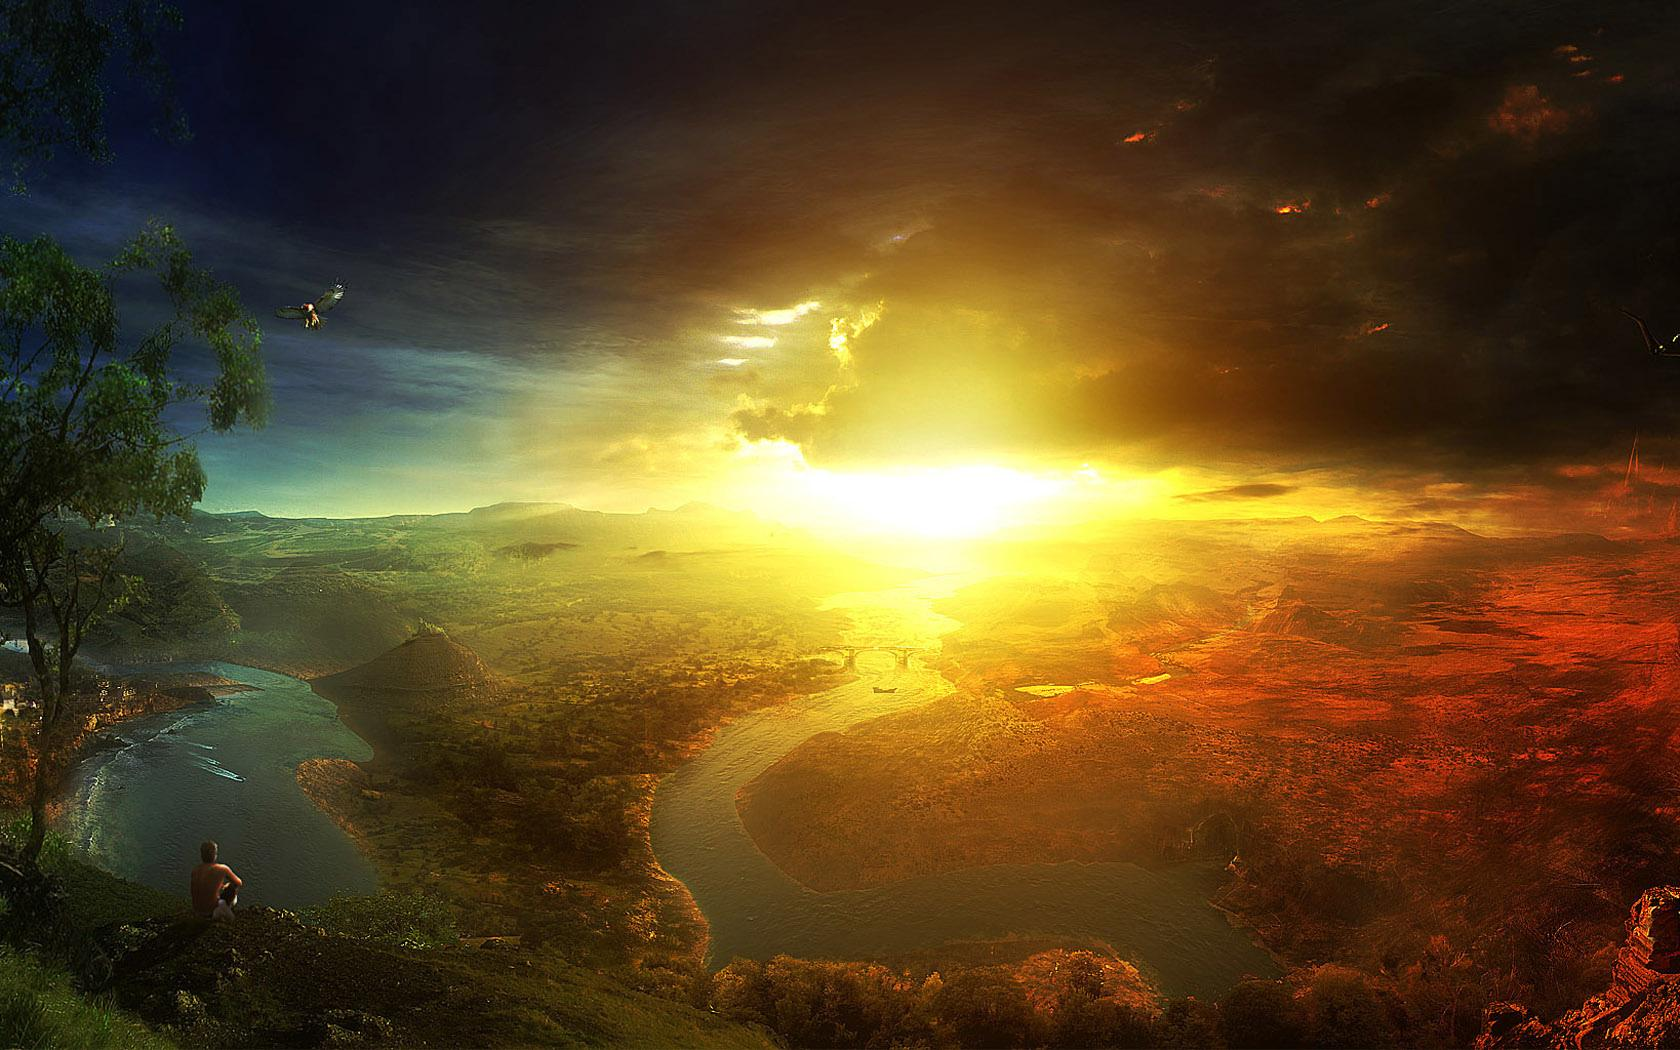 Sunset Fantasy wallpapers HD quality